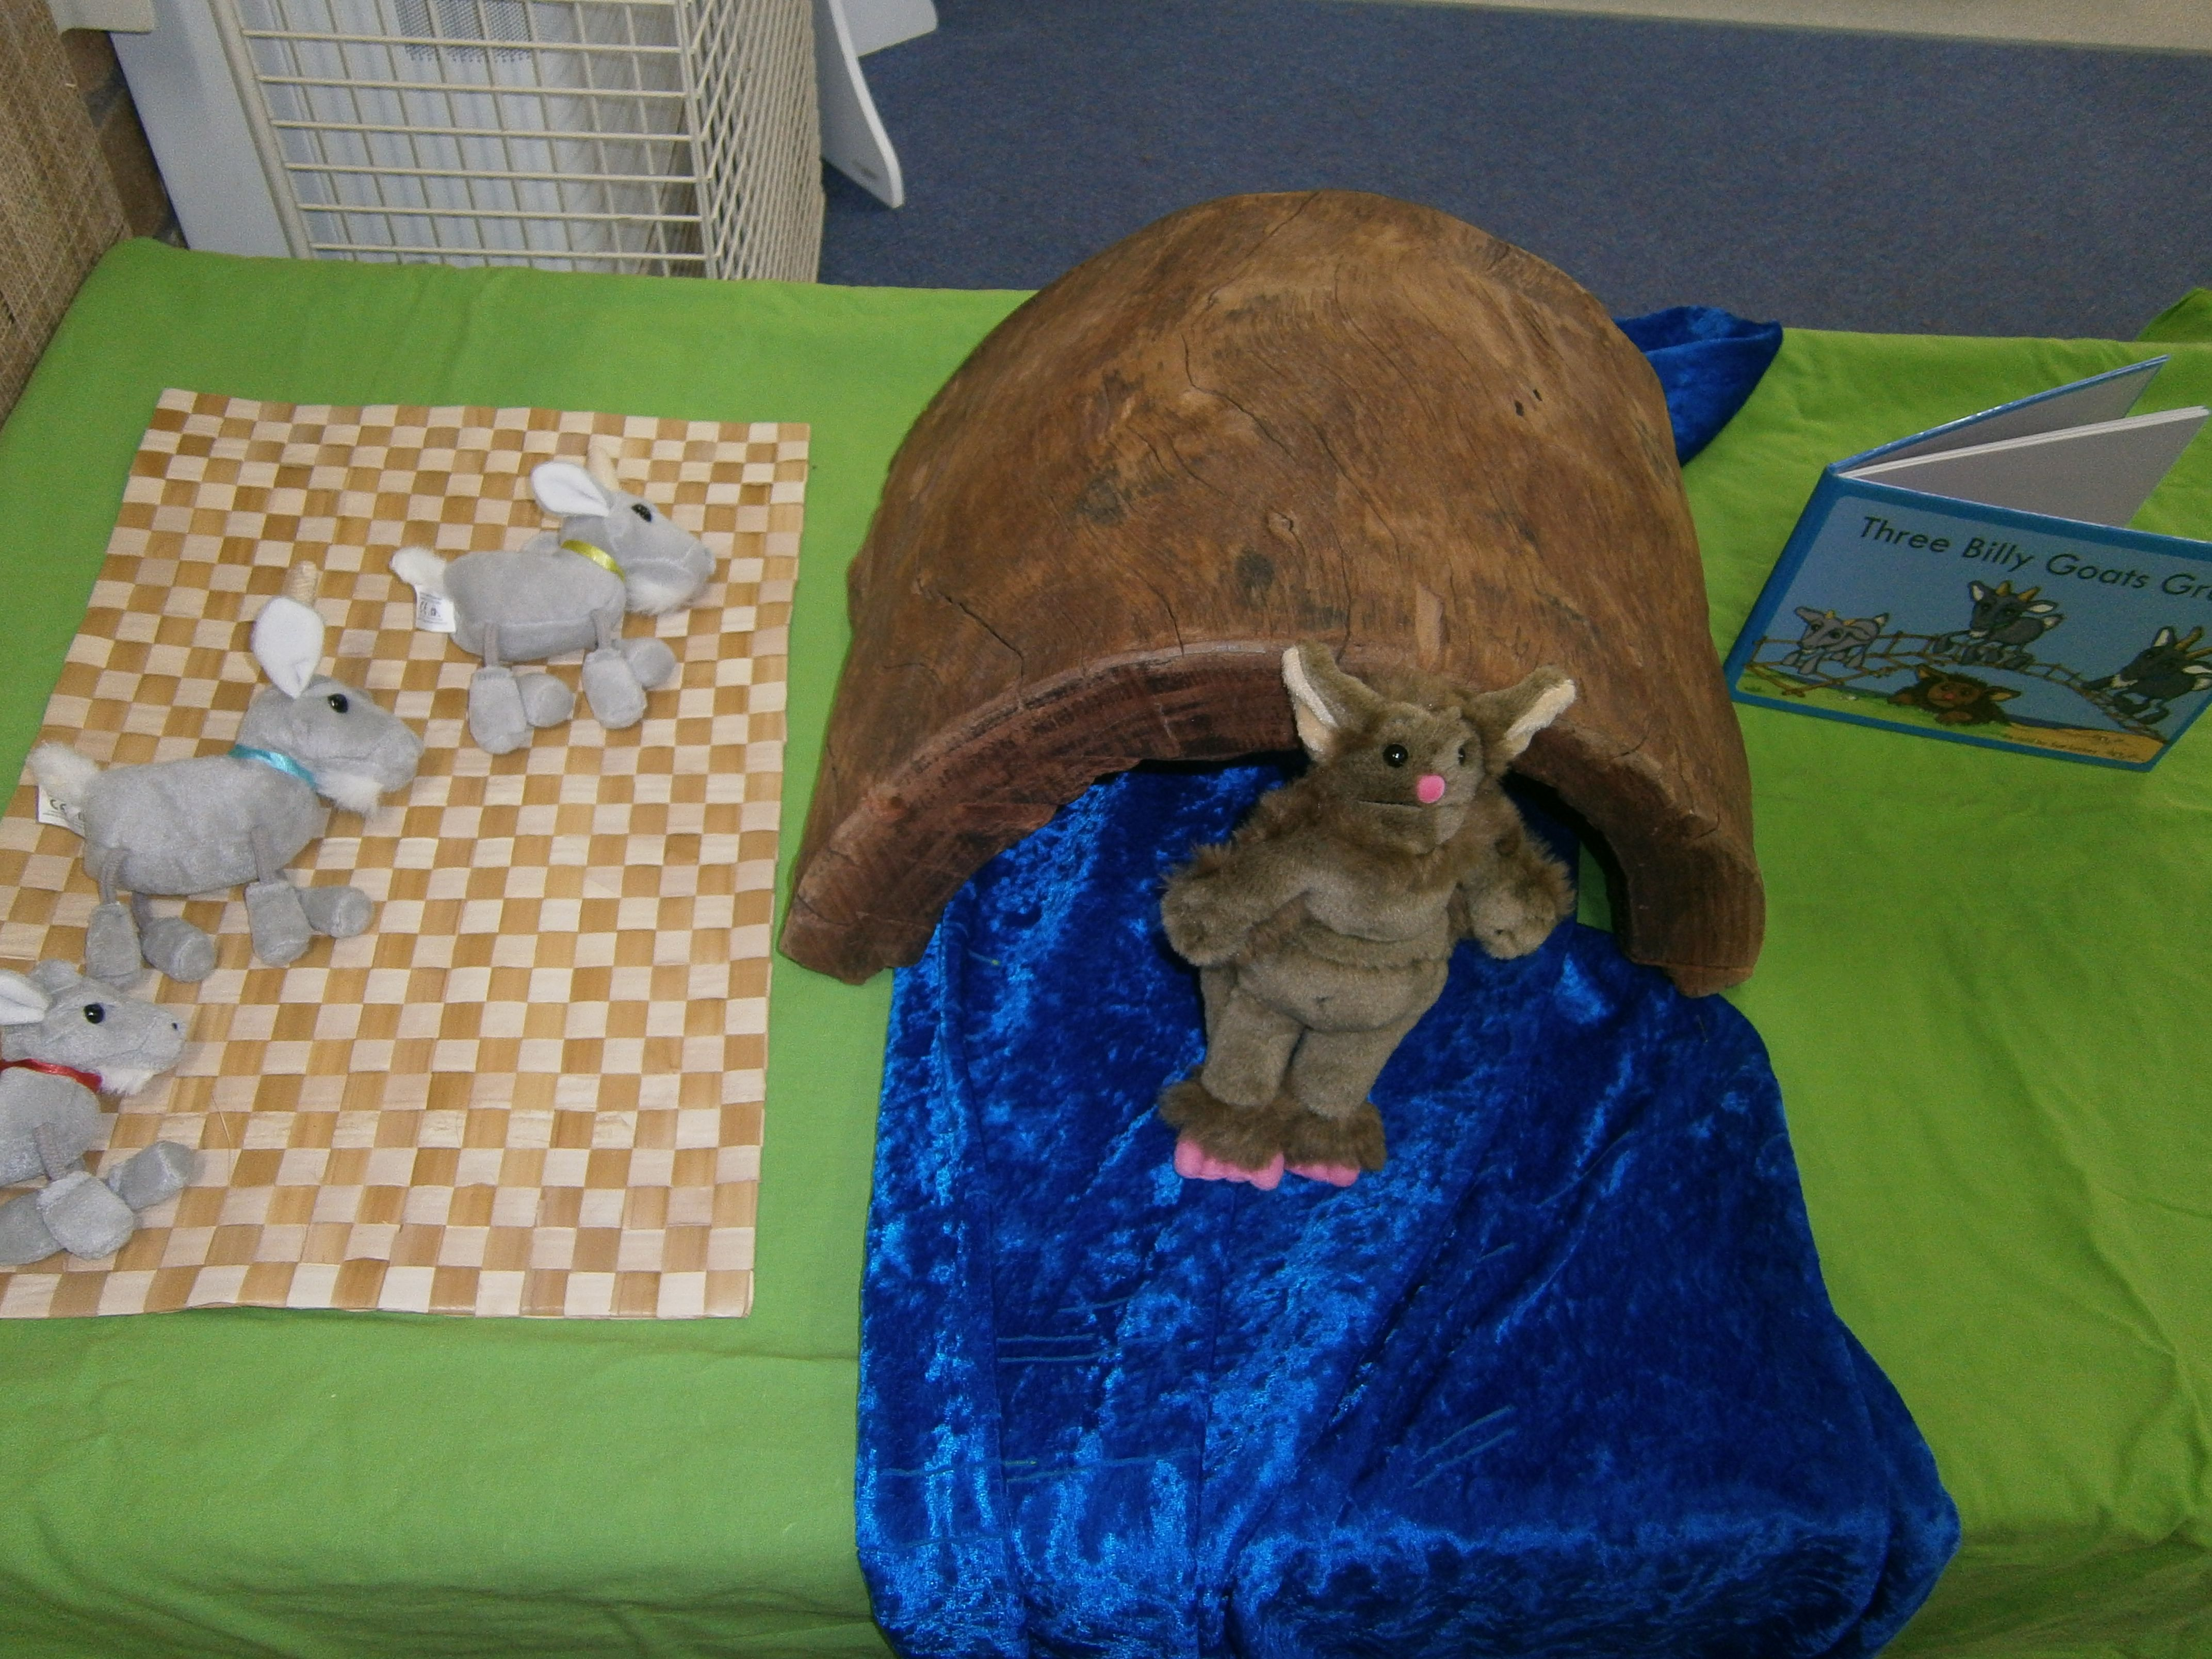 The Three Billy Goats Gruff Story Table